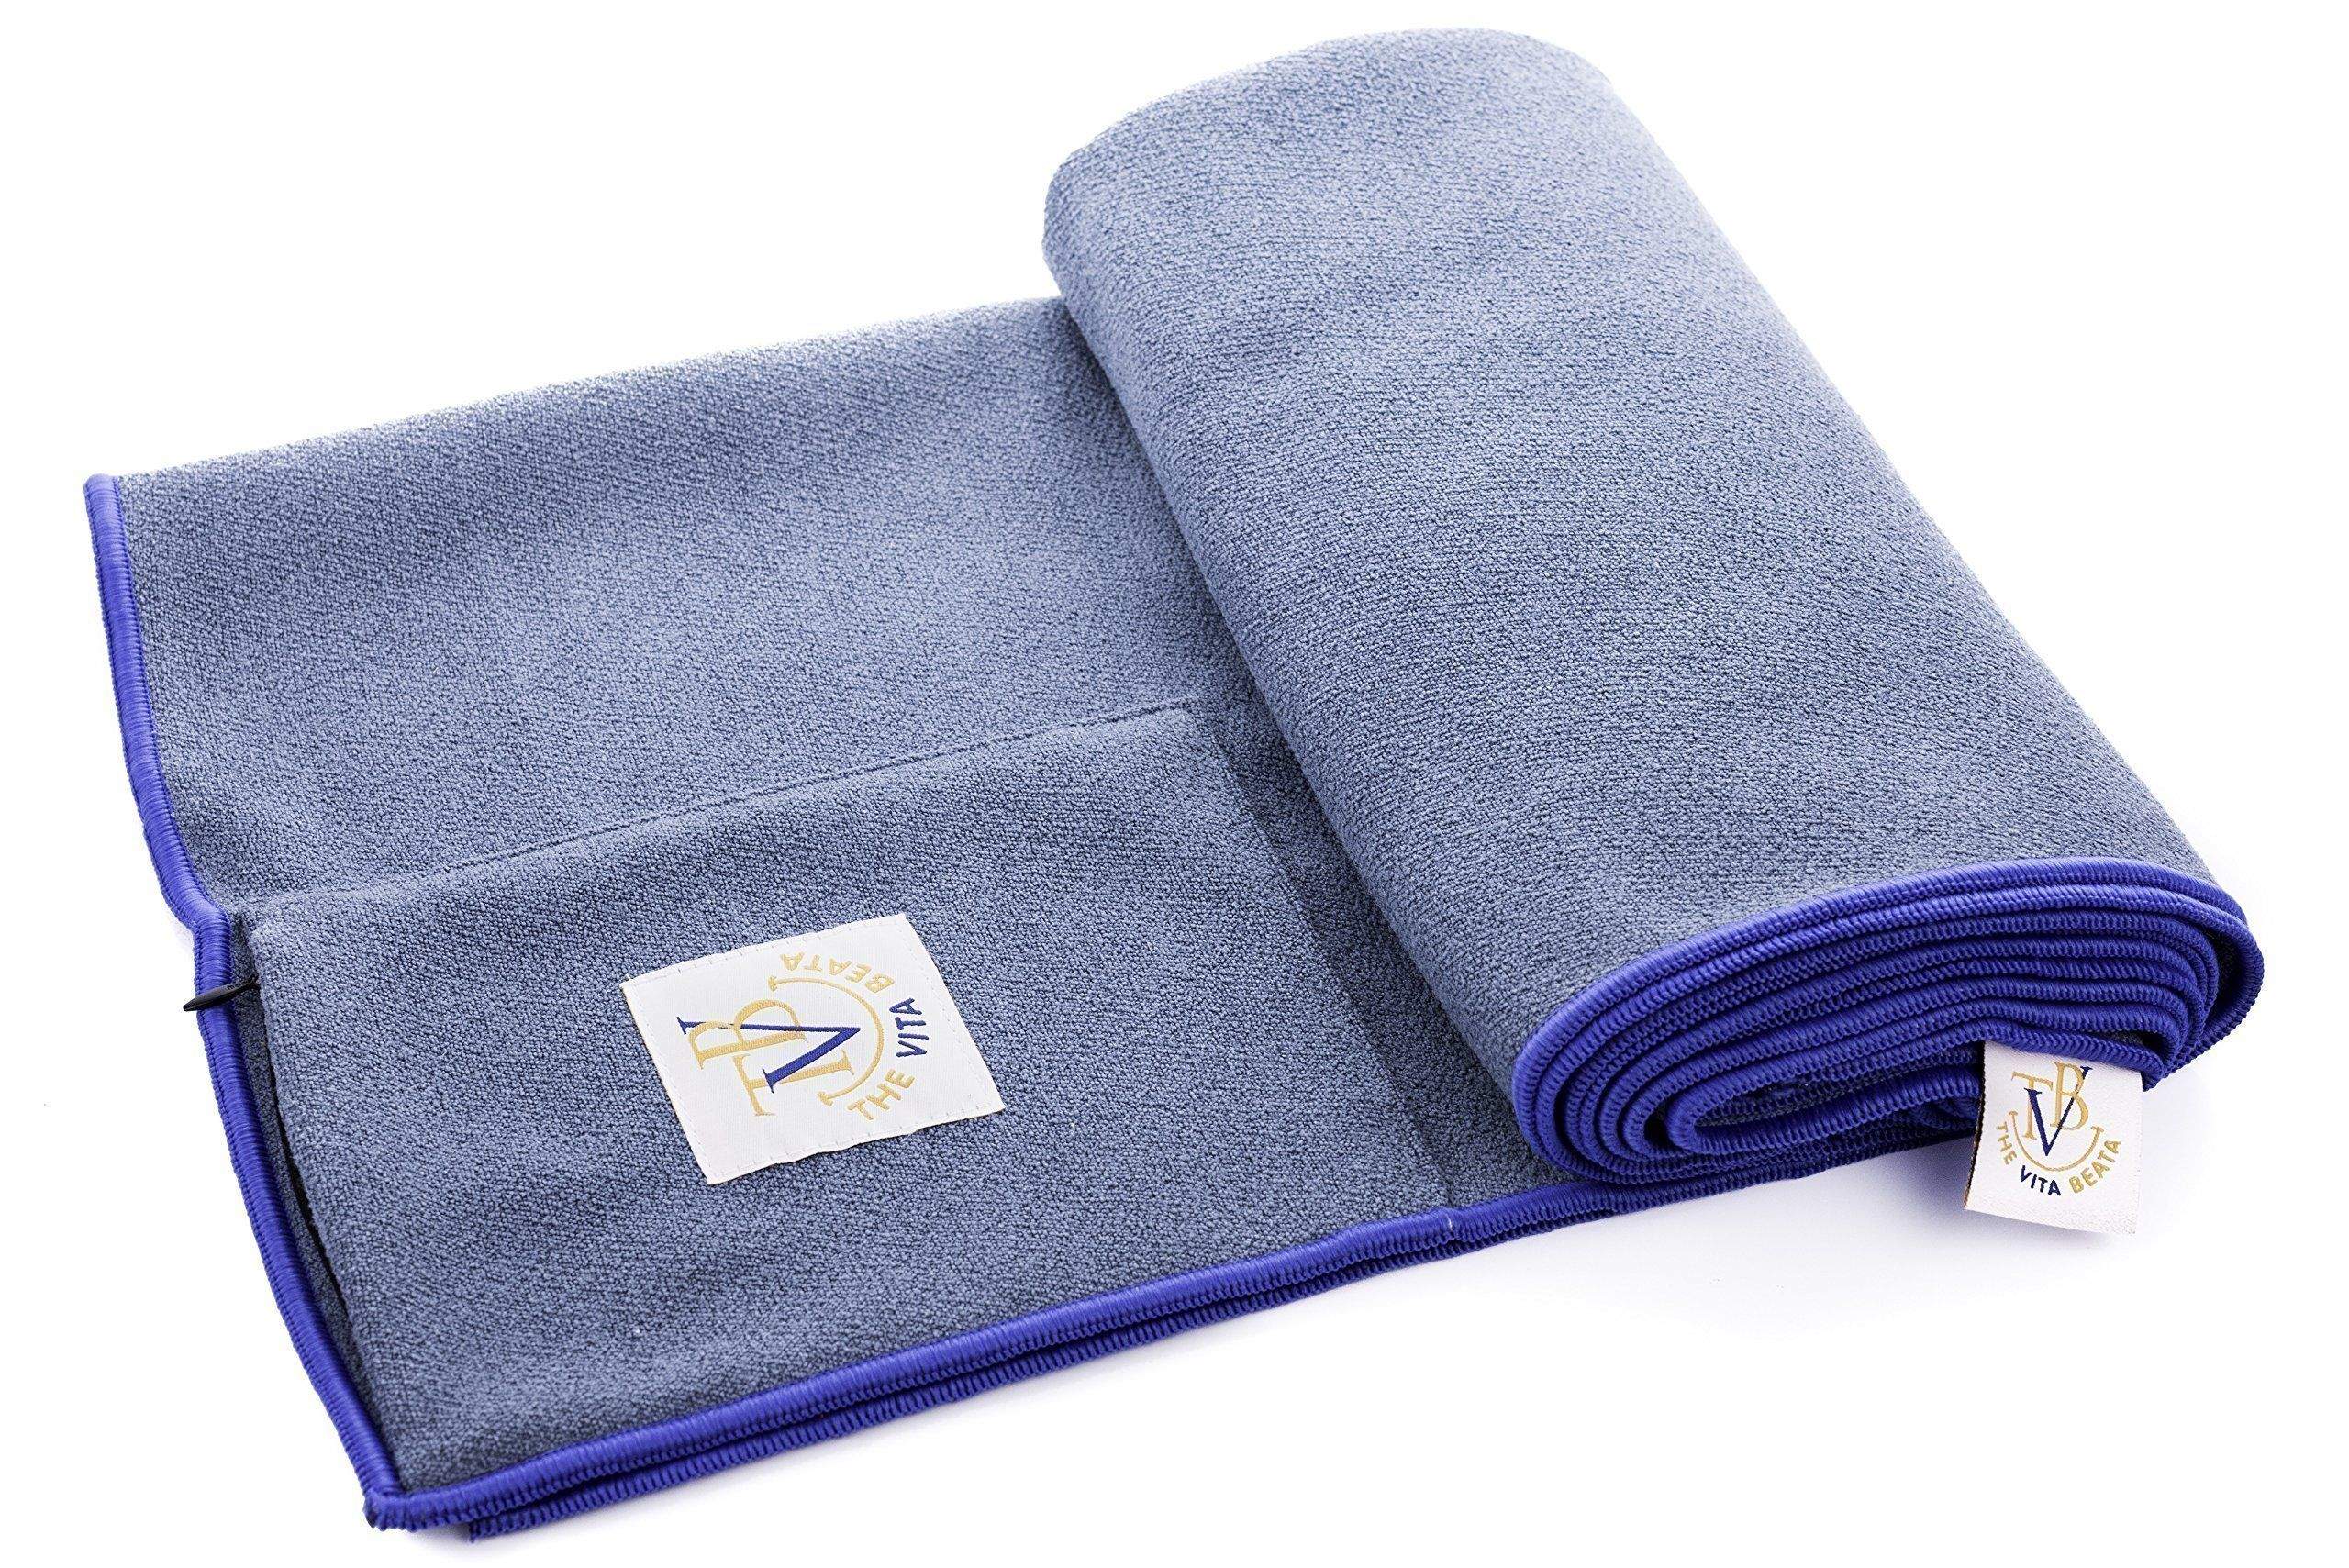 green put of trim stay mats ca yoga picture mat with purple towel gaiam towels